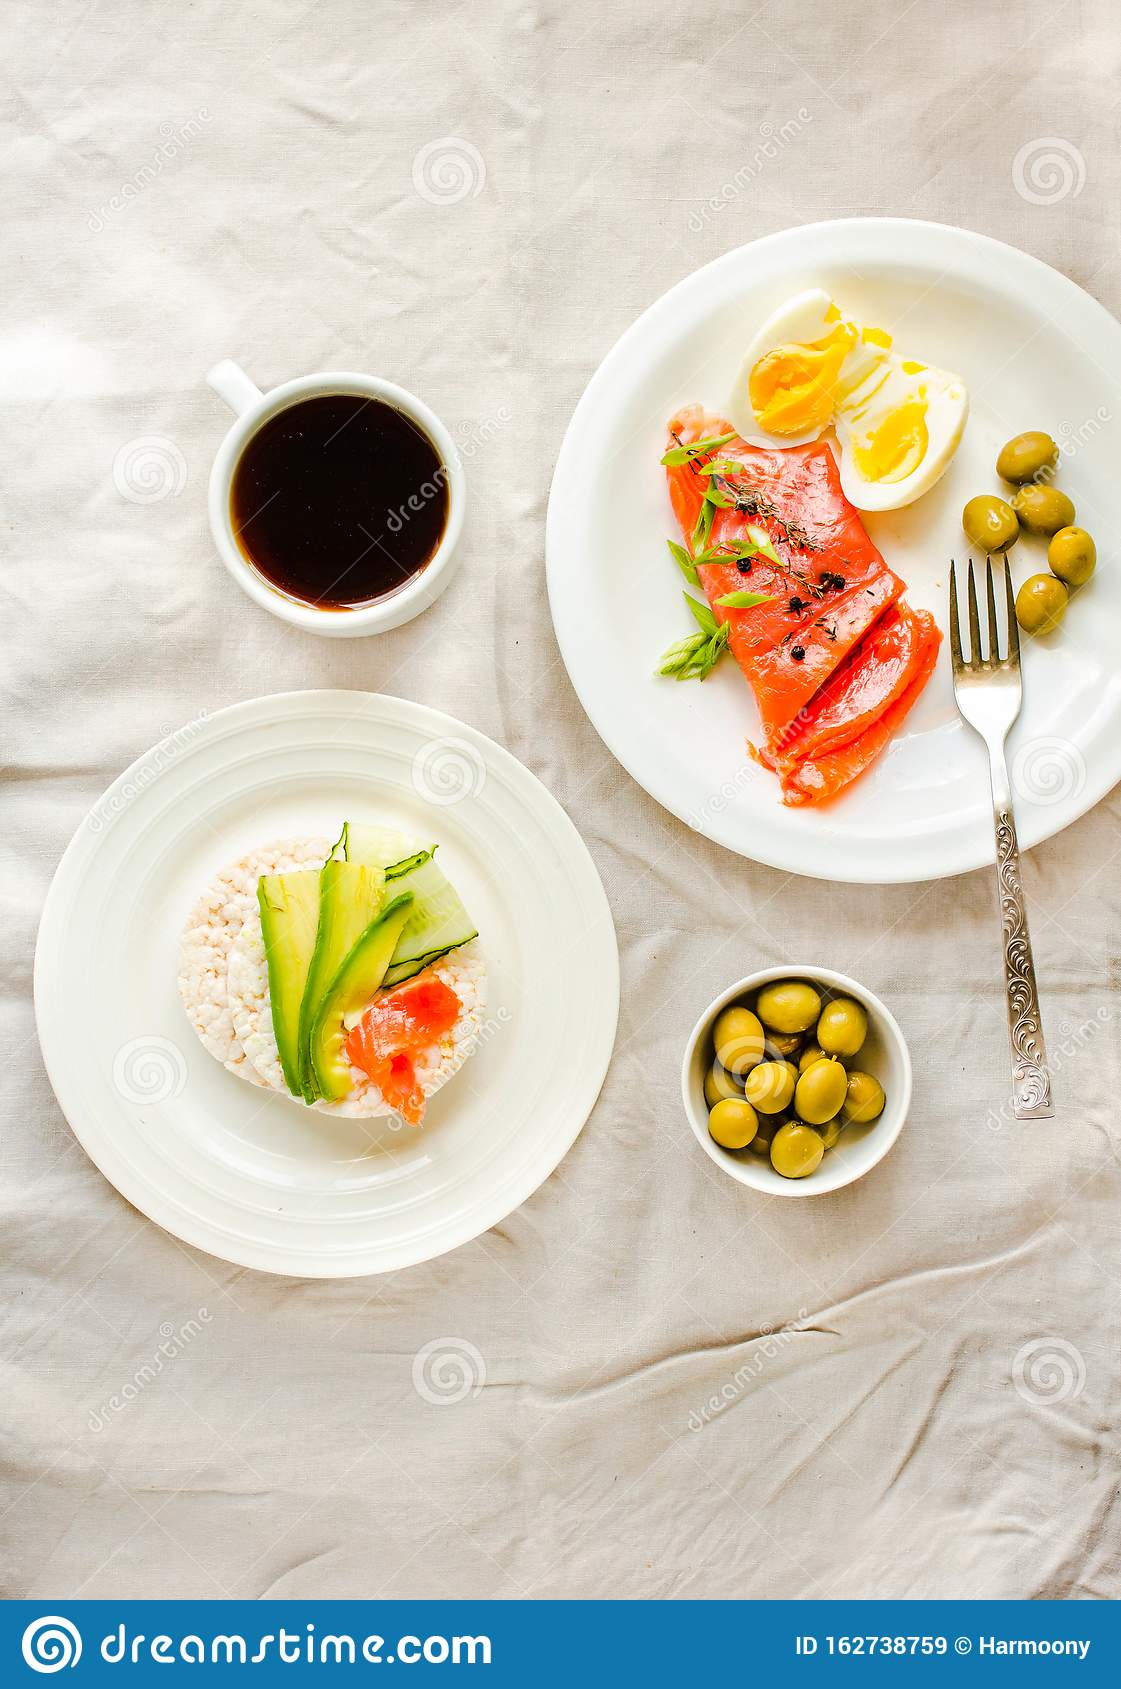 Products With Omega 3 Good For Healthy Hair And Skin Paleo Diet Concept Close Up Of Male Hands With Food Rich In Fat And Stock Image Image Of Fitness Plan 162738759